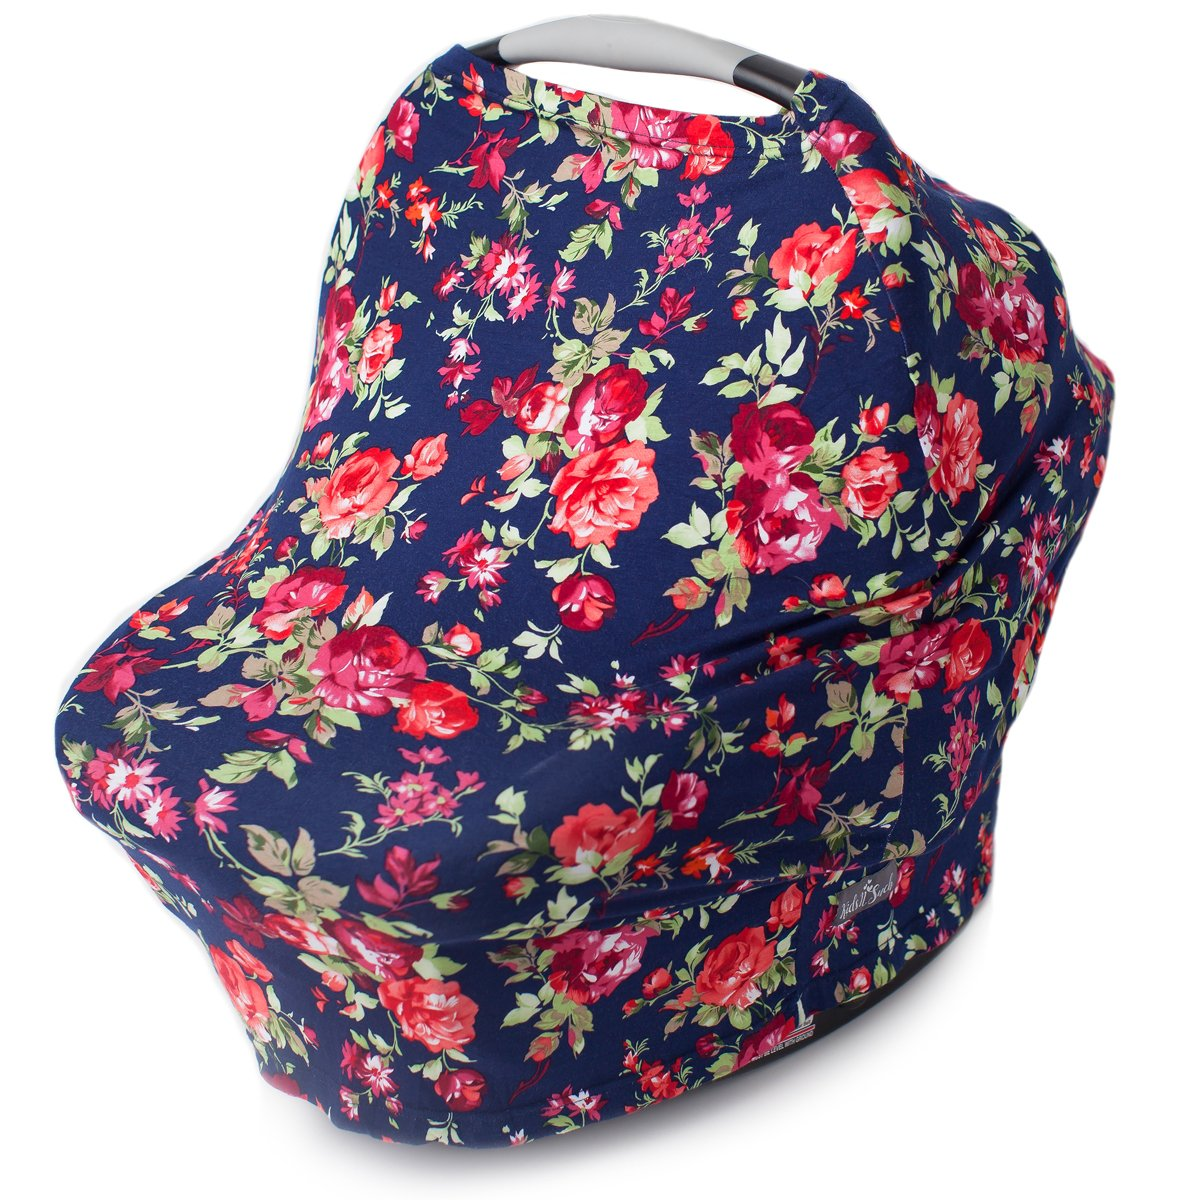 Kids N' Such Multi Use Car Seat Canopy, Nursing Cover, Shopping Cart Cover, and Breastfeeding Scarf- Vintage Navy Floral Carseat Canopy Cover for Baby Girls and Boys